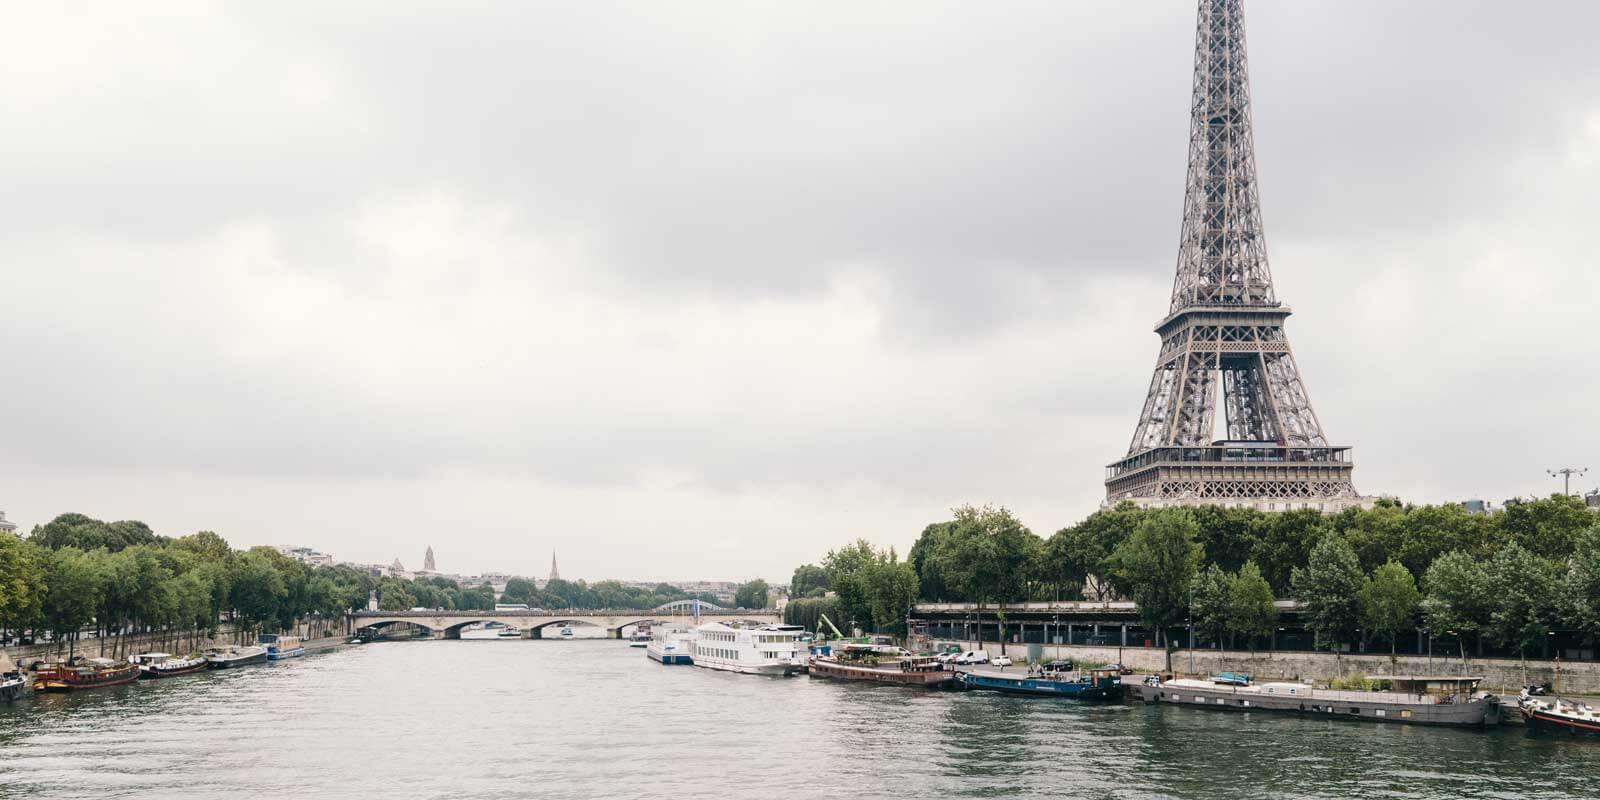 Landscape photo of the Seine River with the Eiffel Tower in the background on a gray, stormy day.